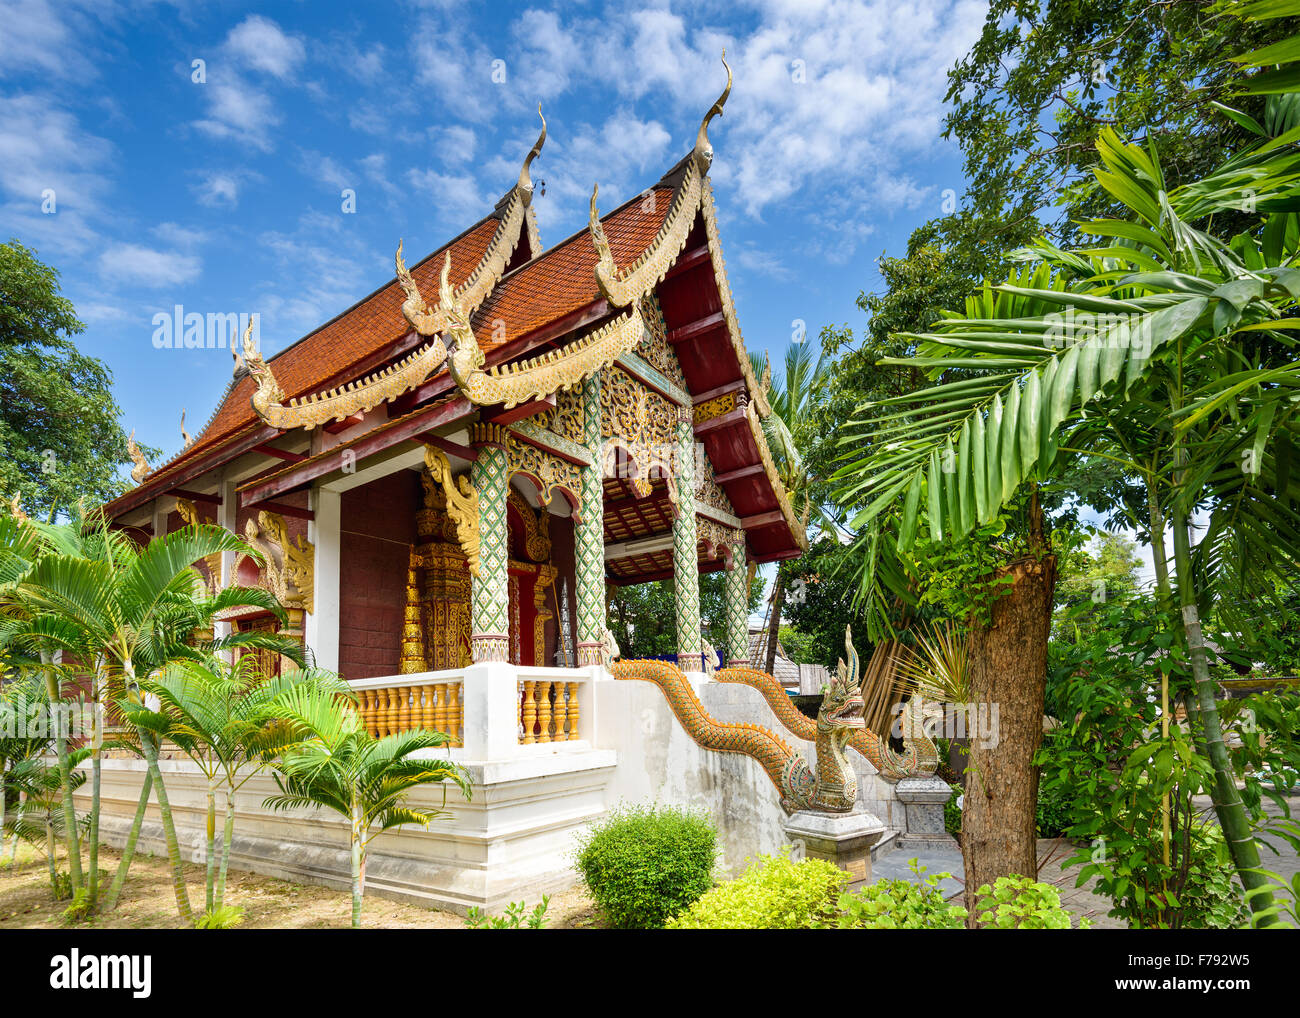 Chiang Mai, Thailand small temple building. - Stock Image